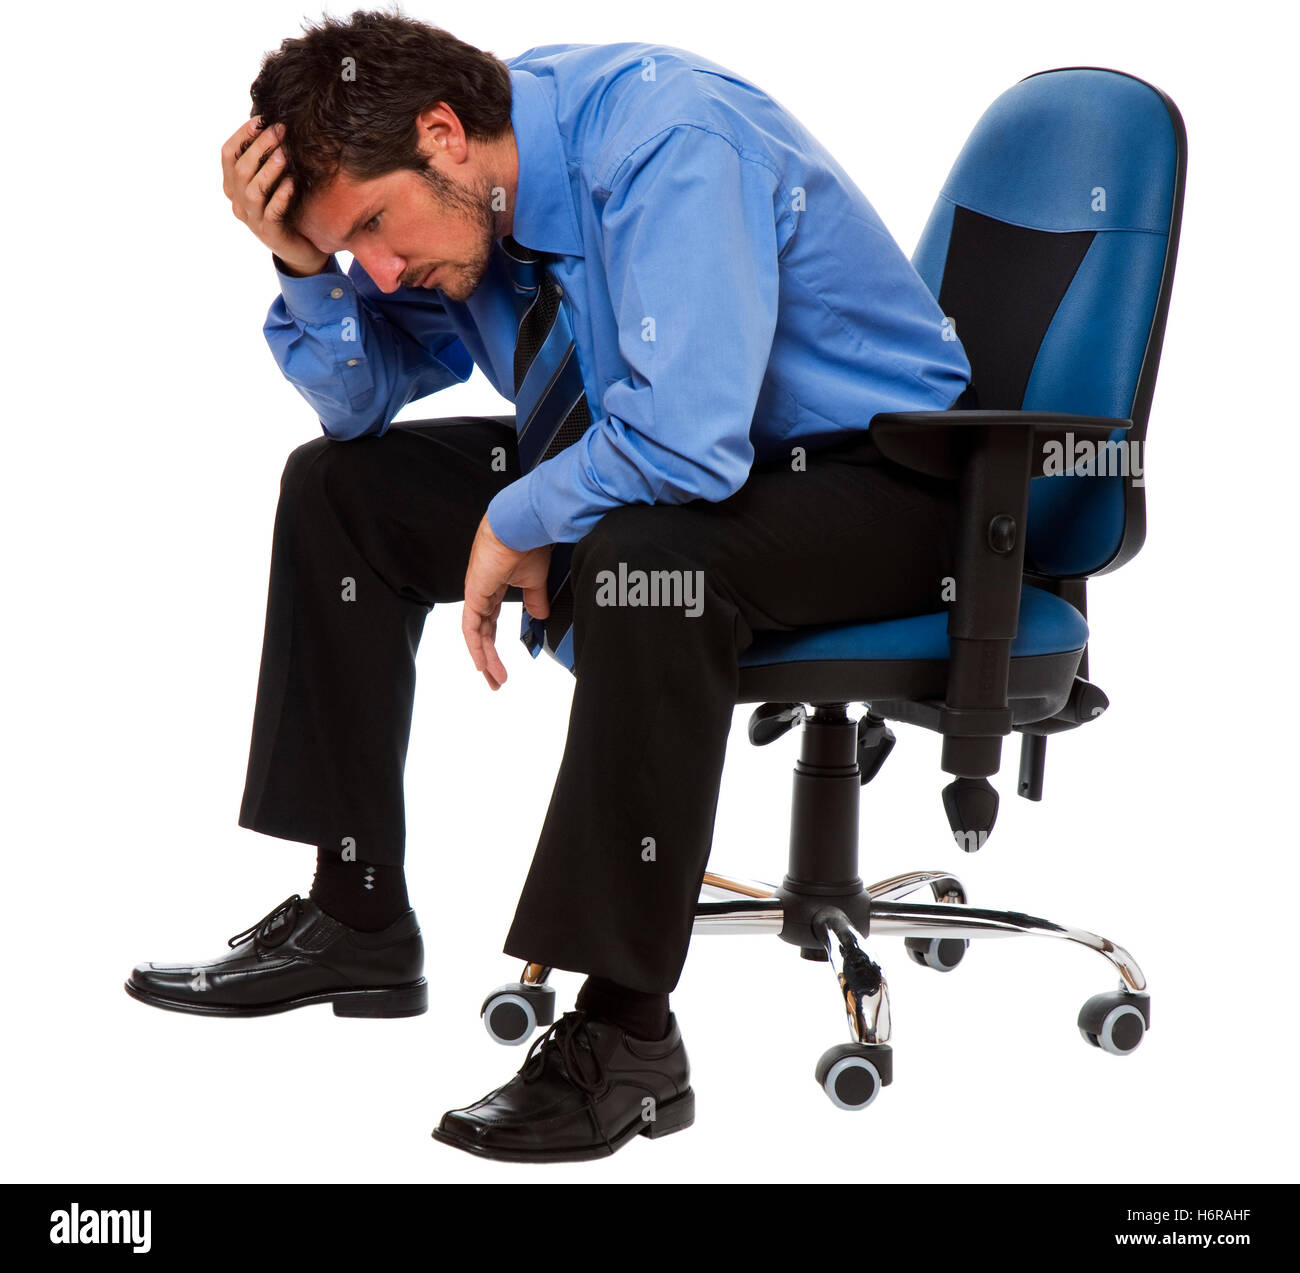 business man businessman put sitting sit chair man isolated conflict person frustration argue noise business dealings - Stock Image